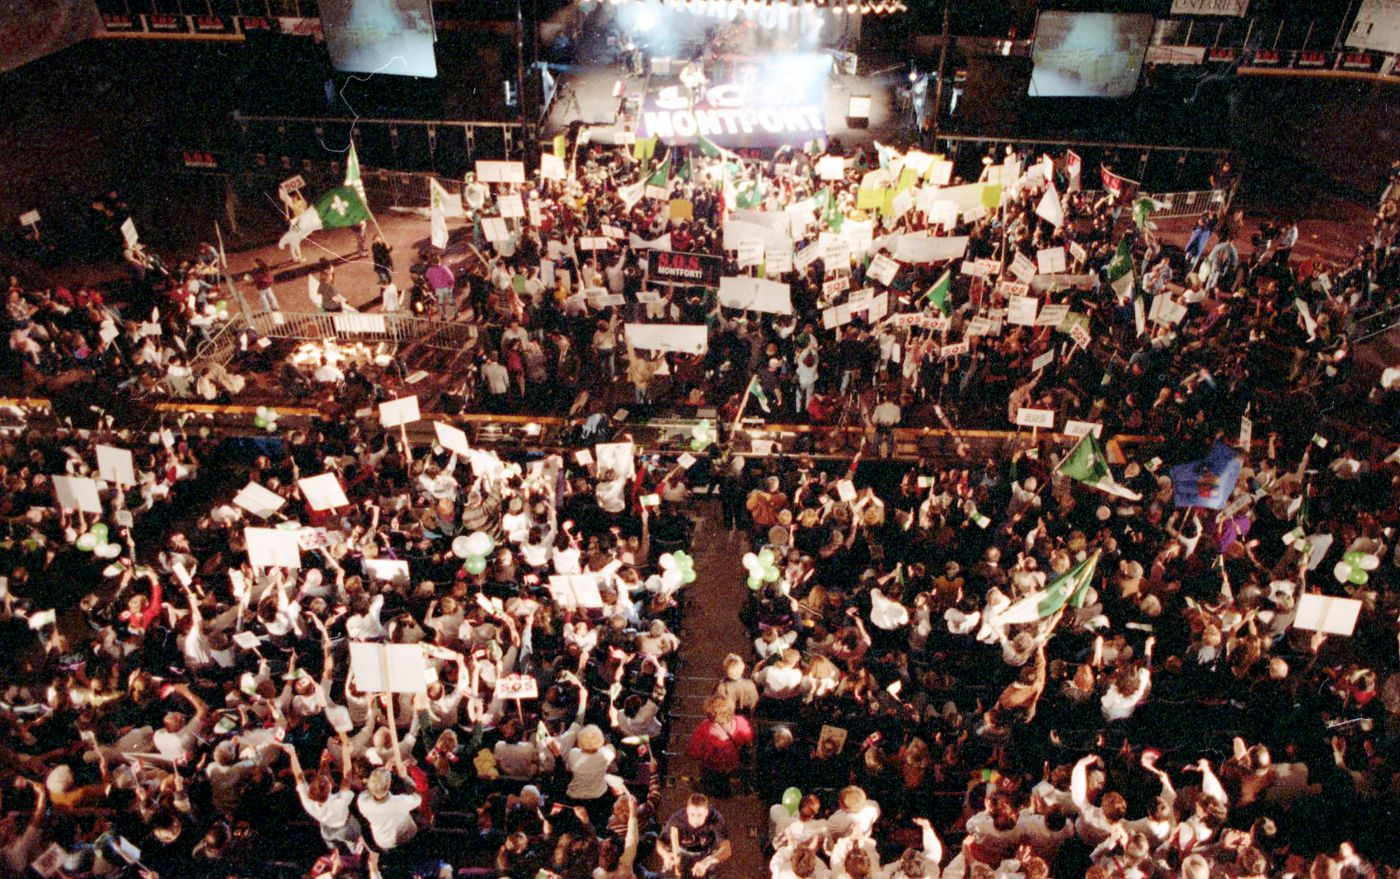 """Colour photograph of a large crowd, seen from behind, in front of a stage. The words """"S.O.S. Montfort"""" are visible on the floor of the stage. The crowd is waving Franco-Ontarian flags, green and white balloons, and placards with the """"S.O.S. Montfort"""" slogan."""